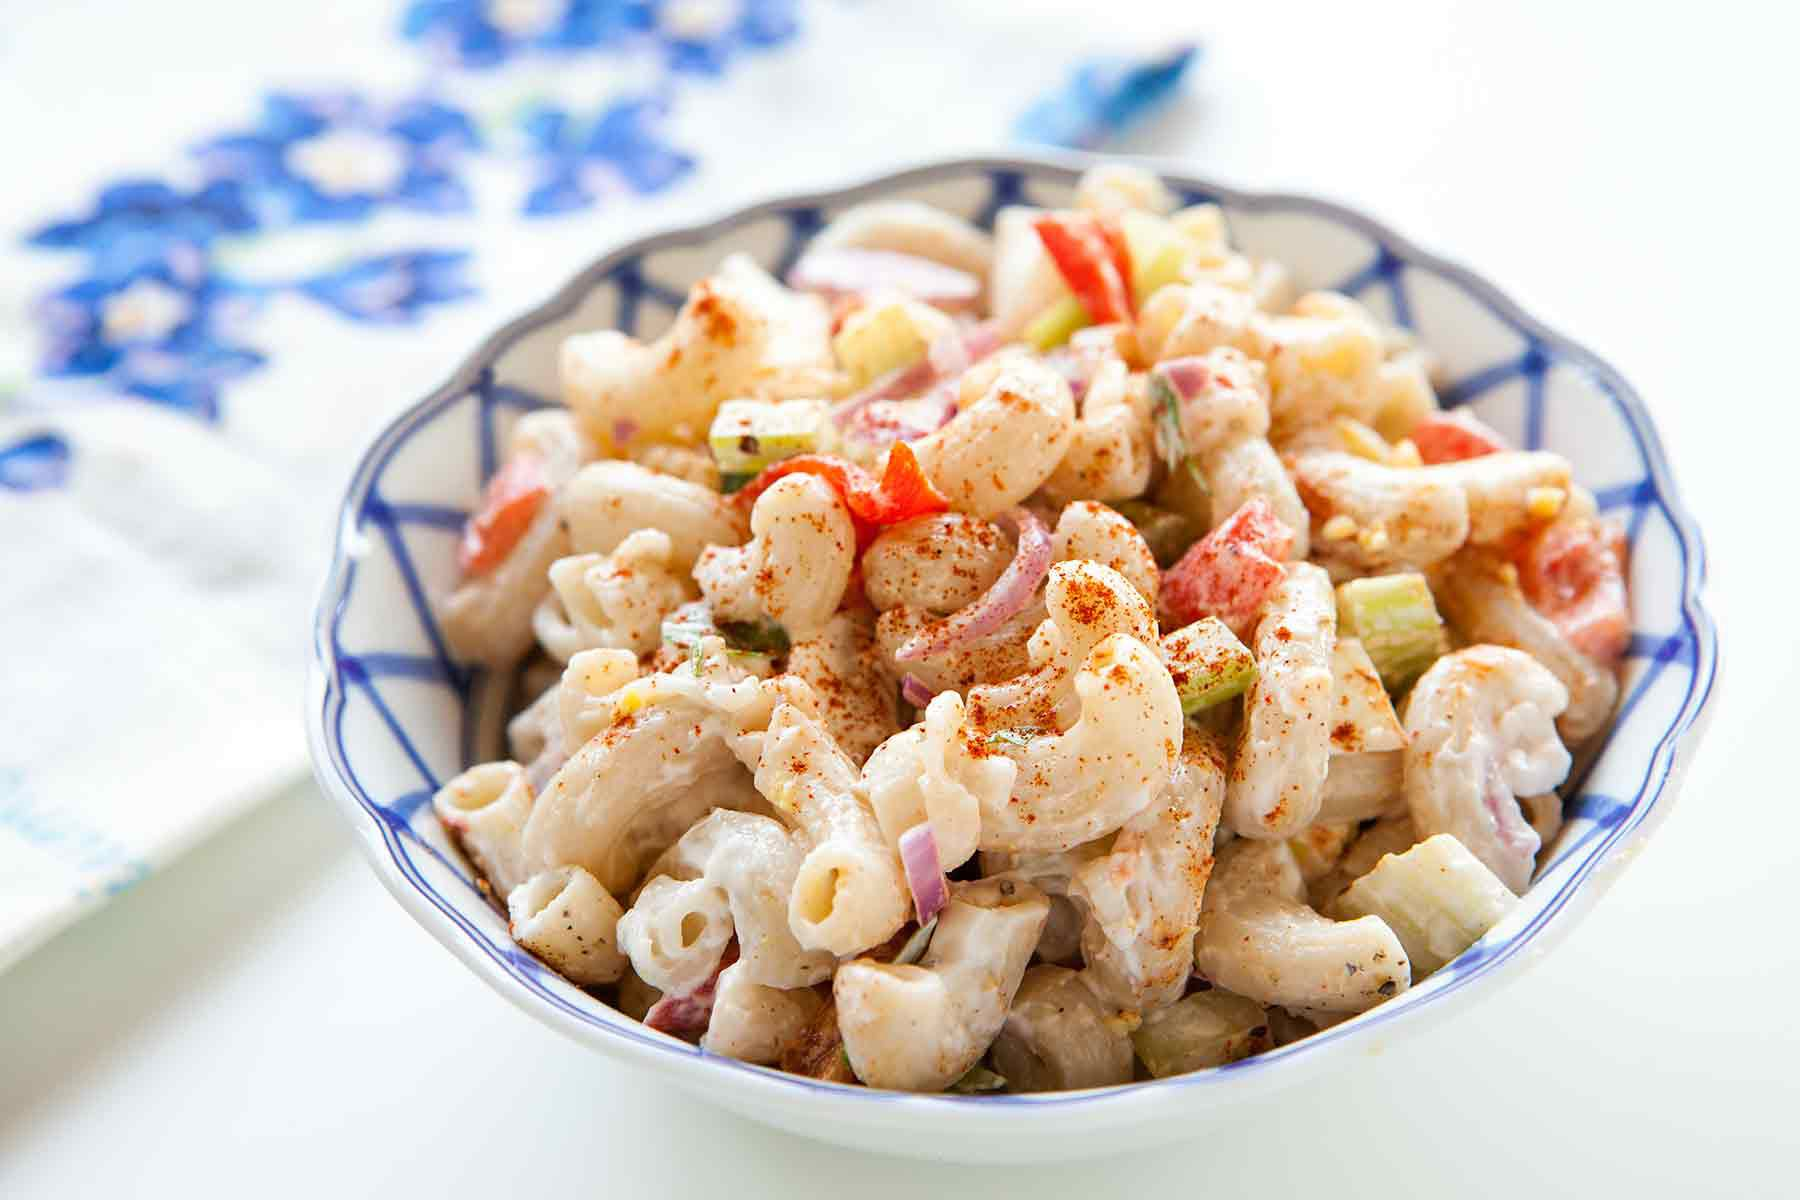 Easy Macaroni Salad Recipe in a bowl for serving